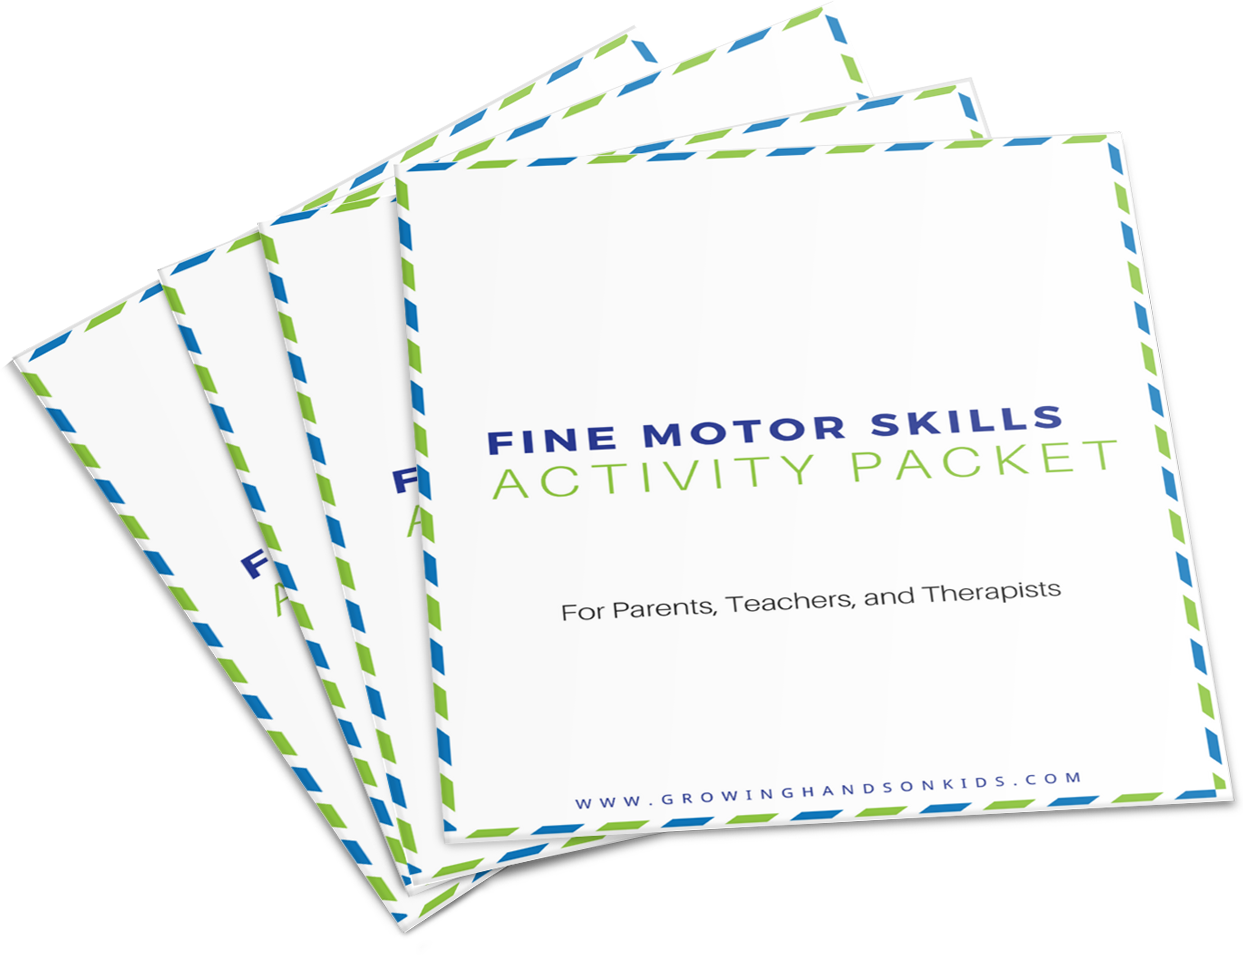 Fine Motor Skills Activity Packet